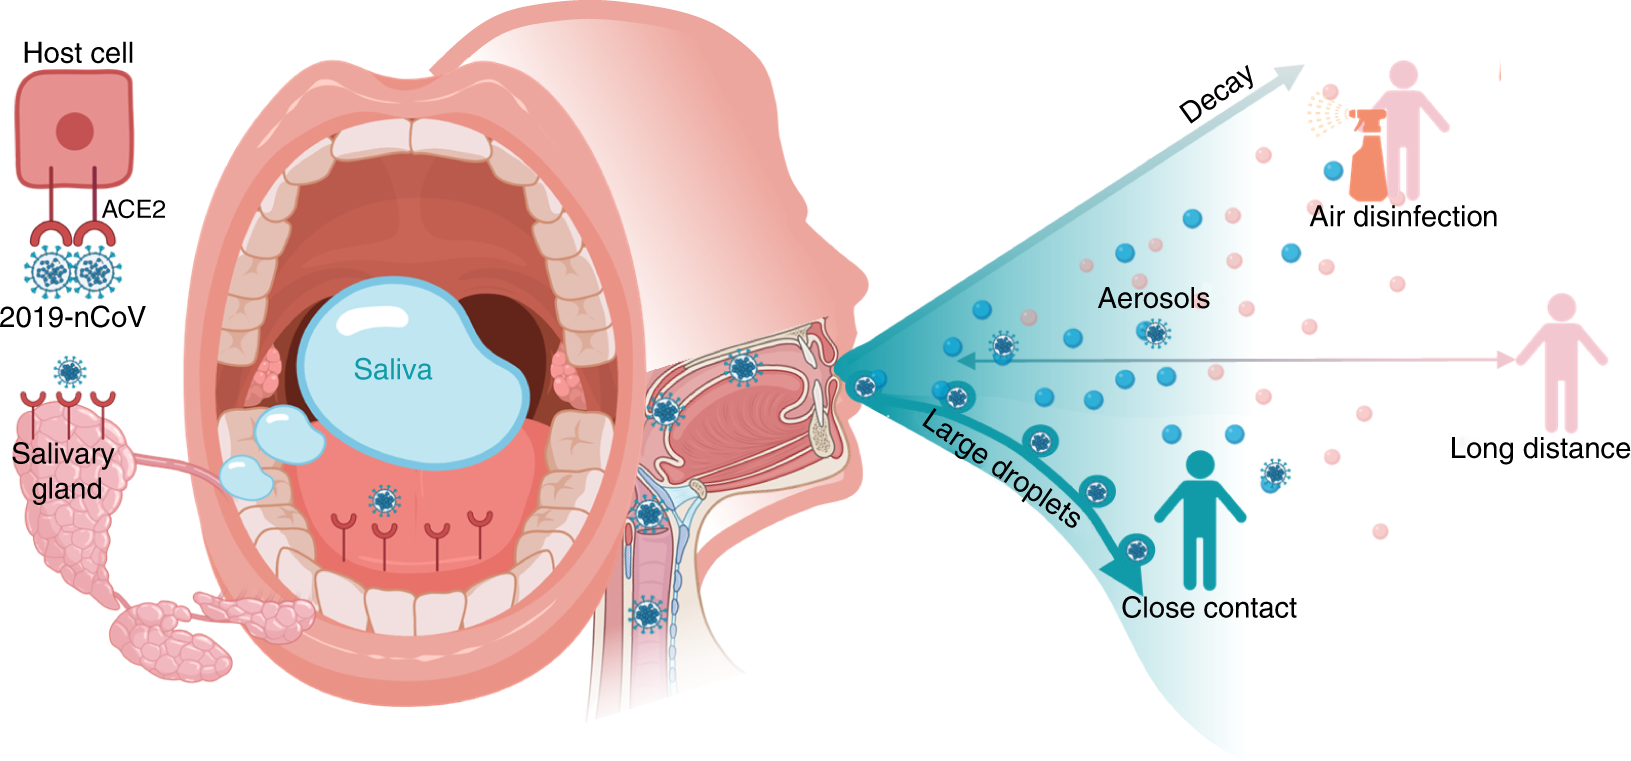 Saliva: potential diagnostic value and transmission of 2019-nCoV |  International Journal of Oral Science